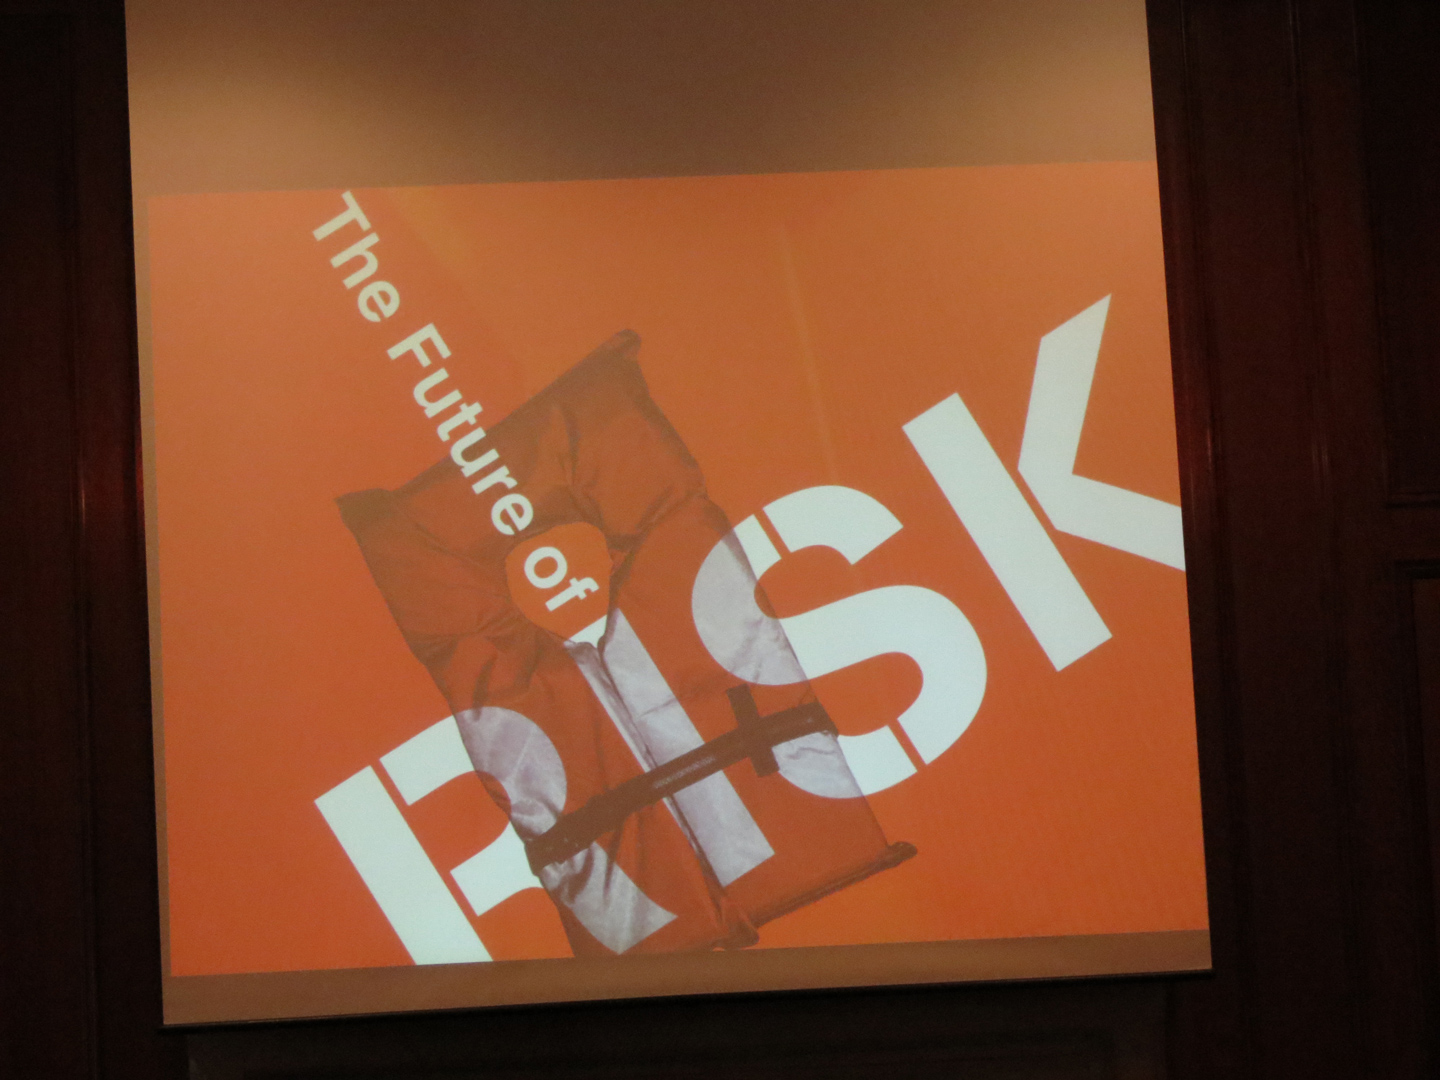 a photo of the poster for the 2012 Future of Risk symposium on display